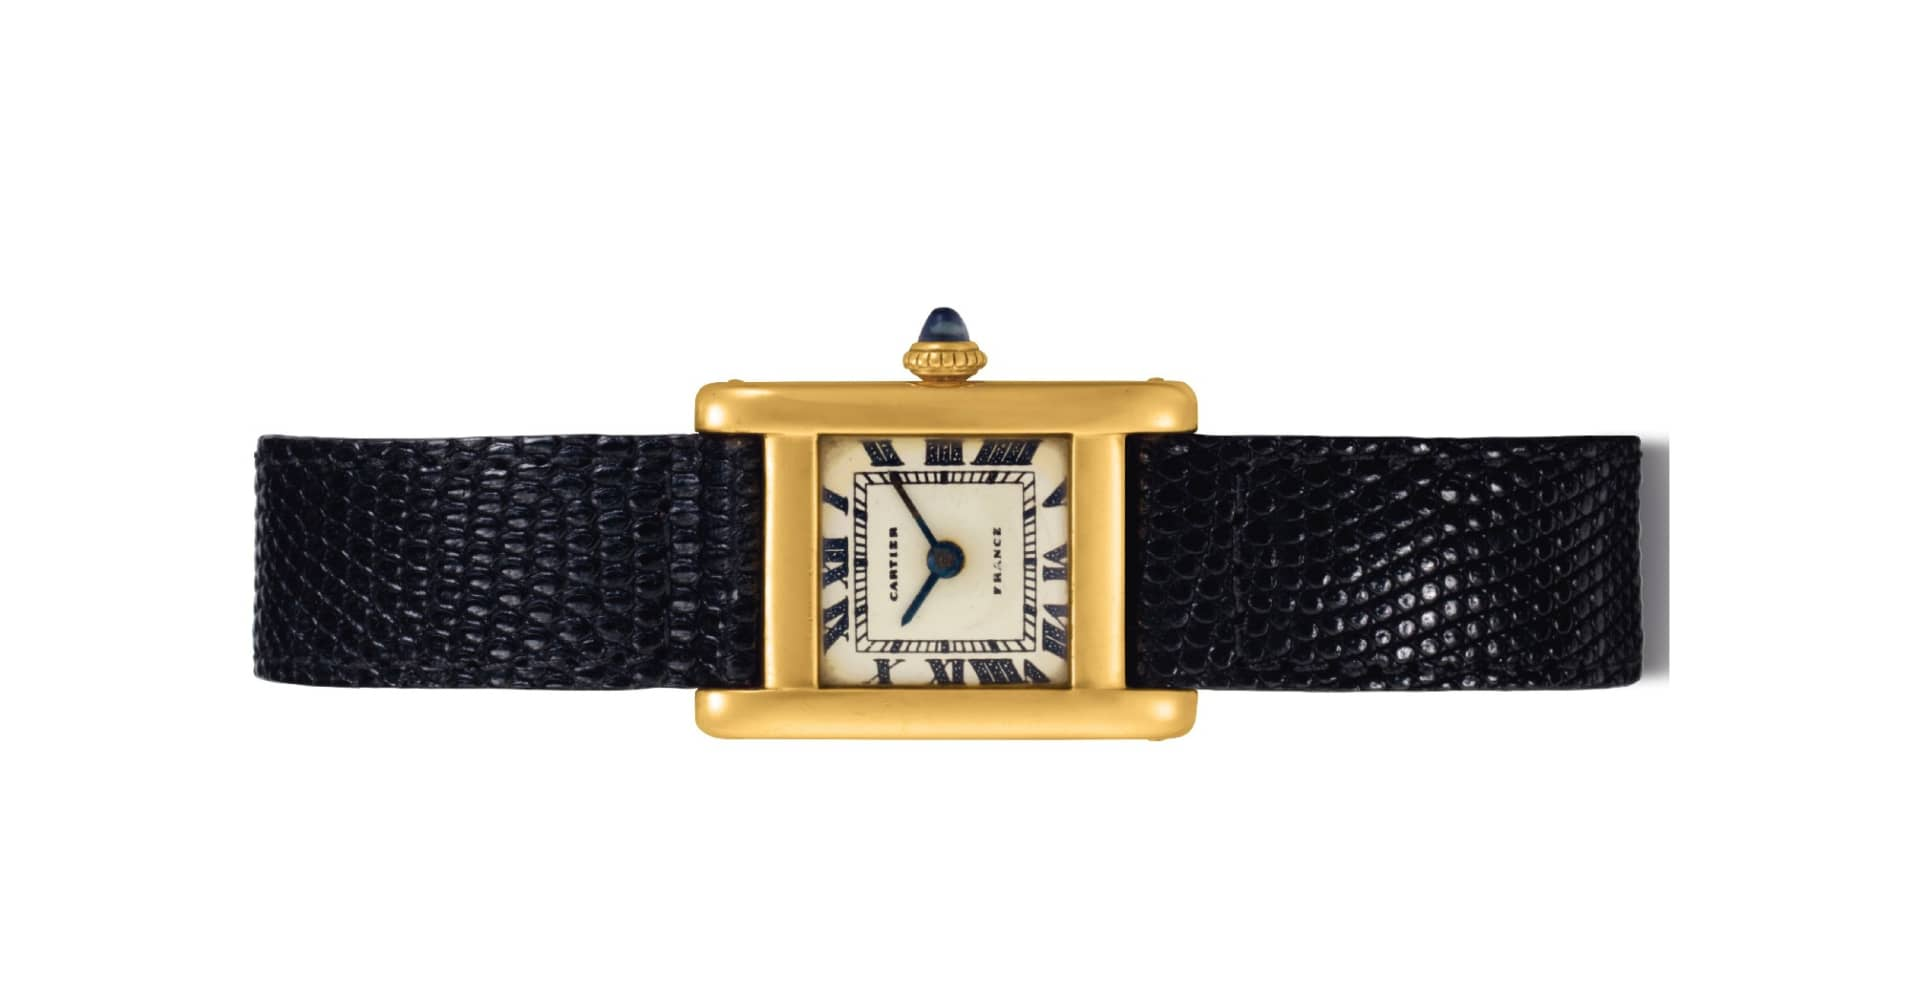 Jackie O Hustler Pics Awesome jackie kennedy onassis cartier watch to sell at auction at christie's